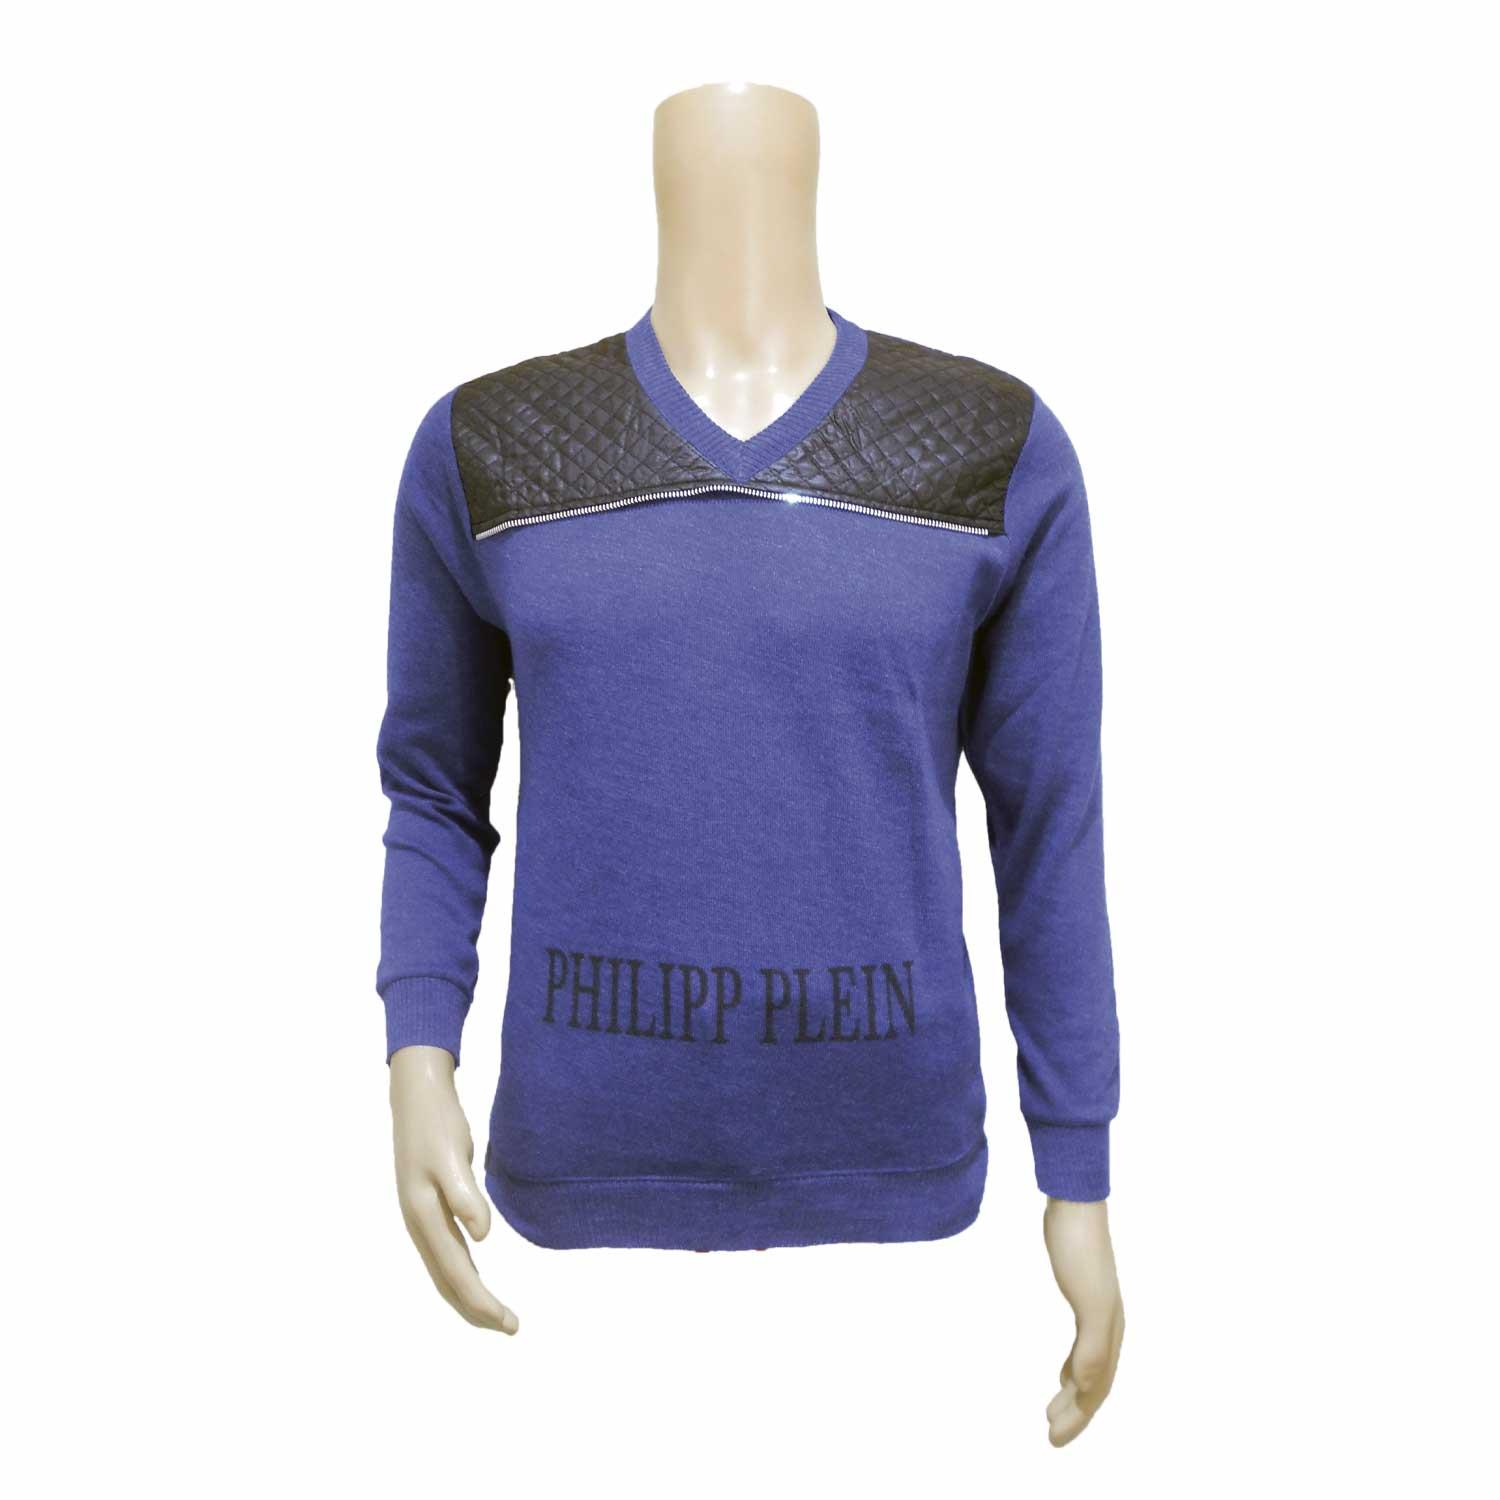 MEN'S SWEATER PHP P BLUE FREE SIZE